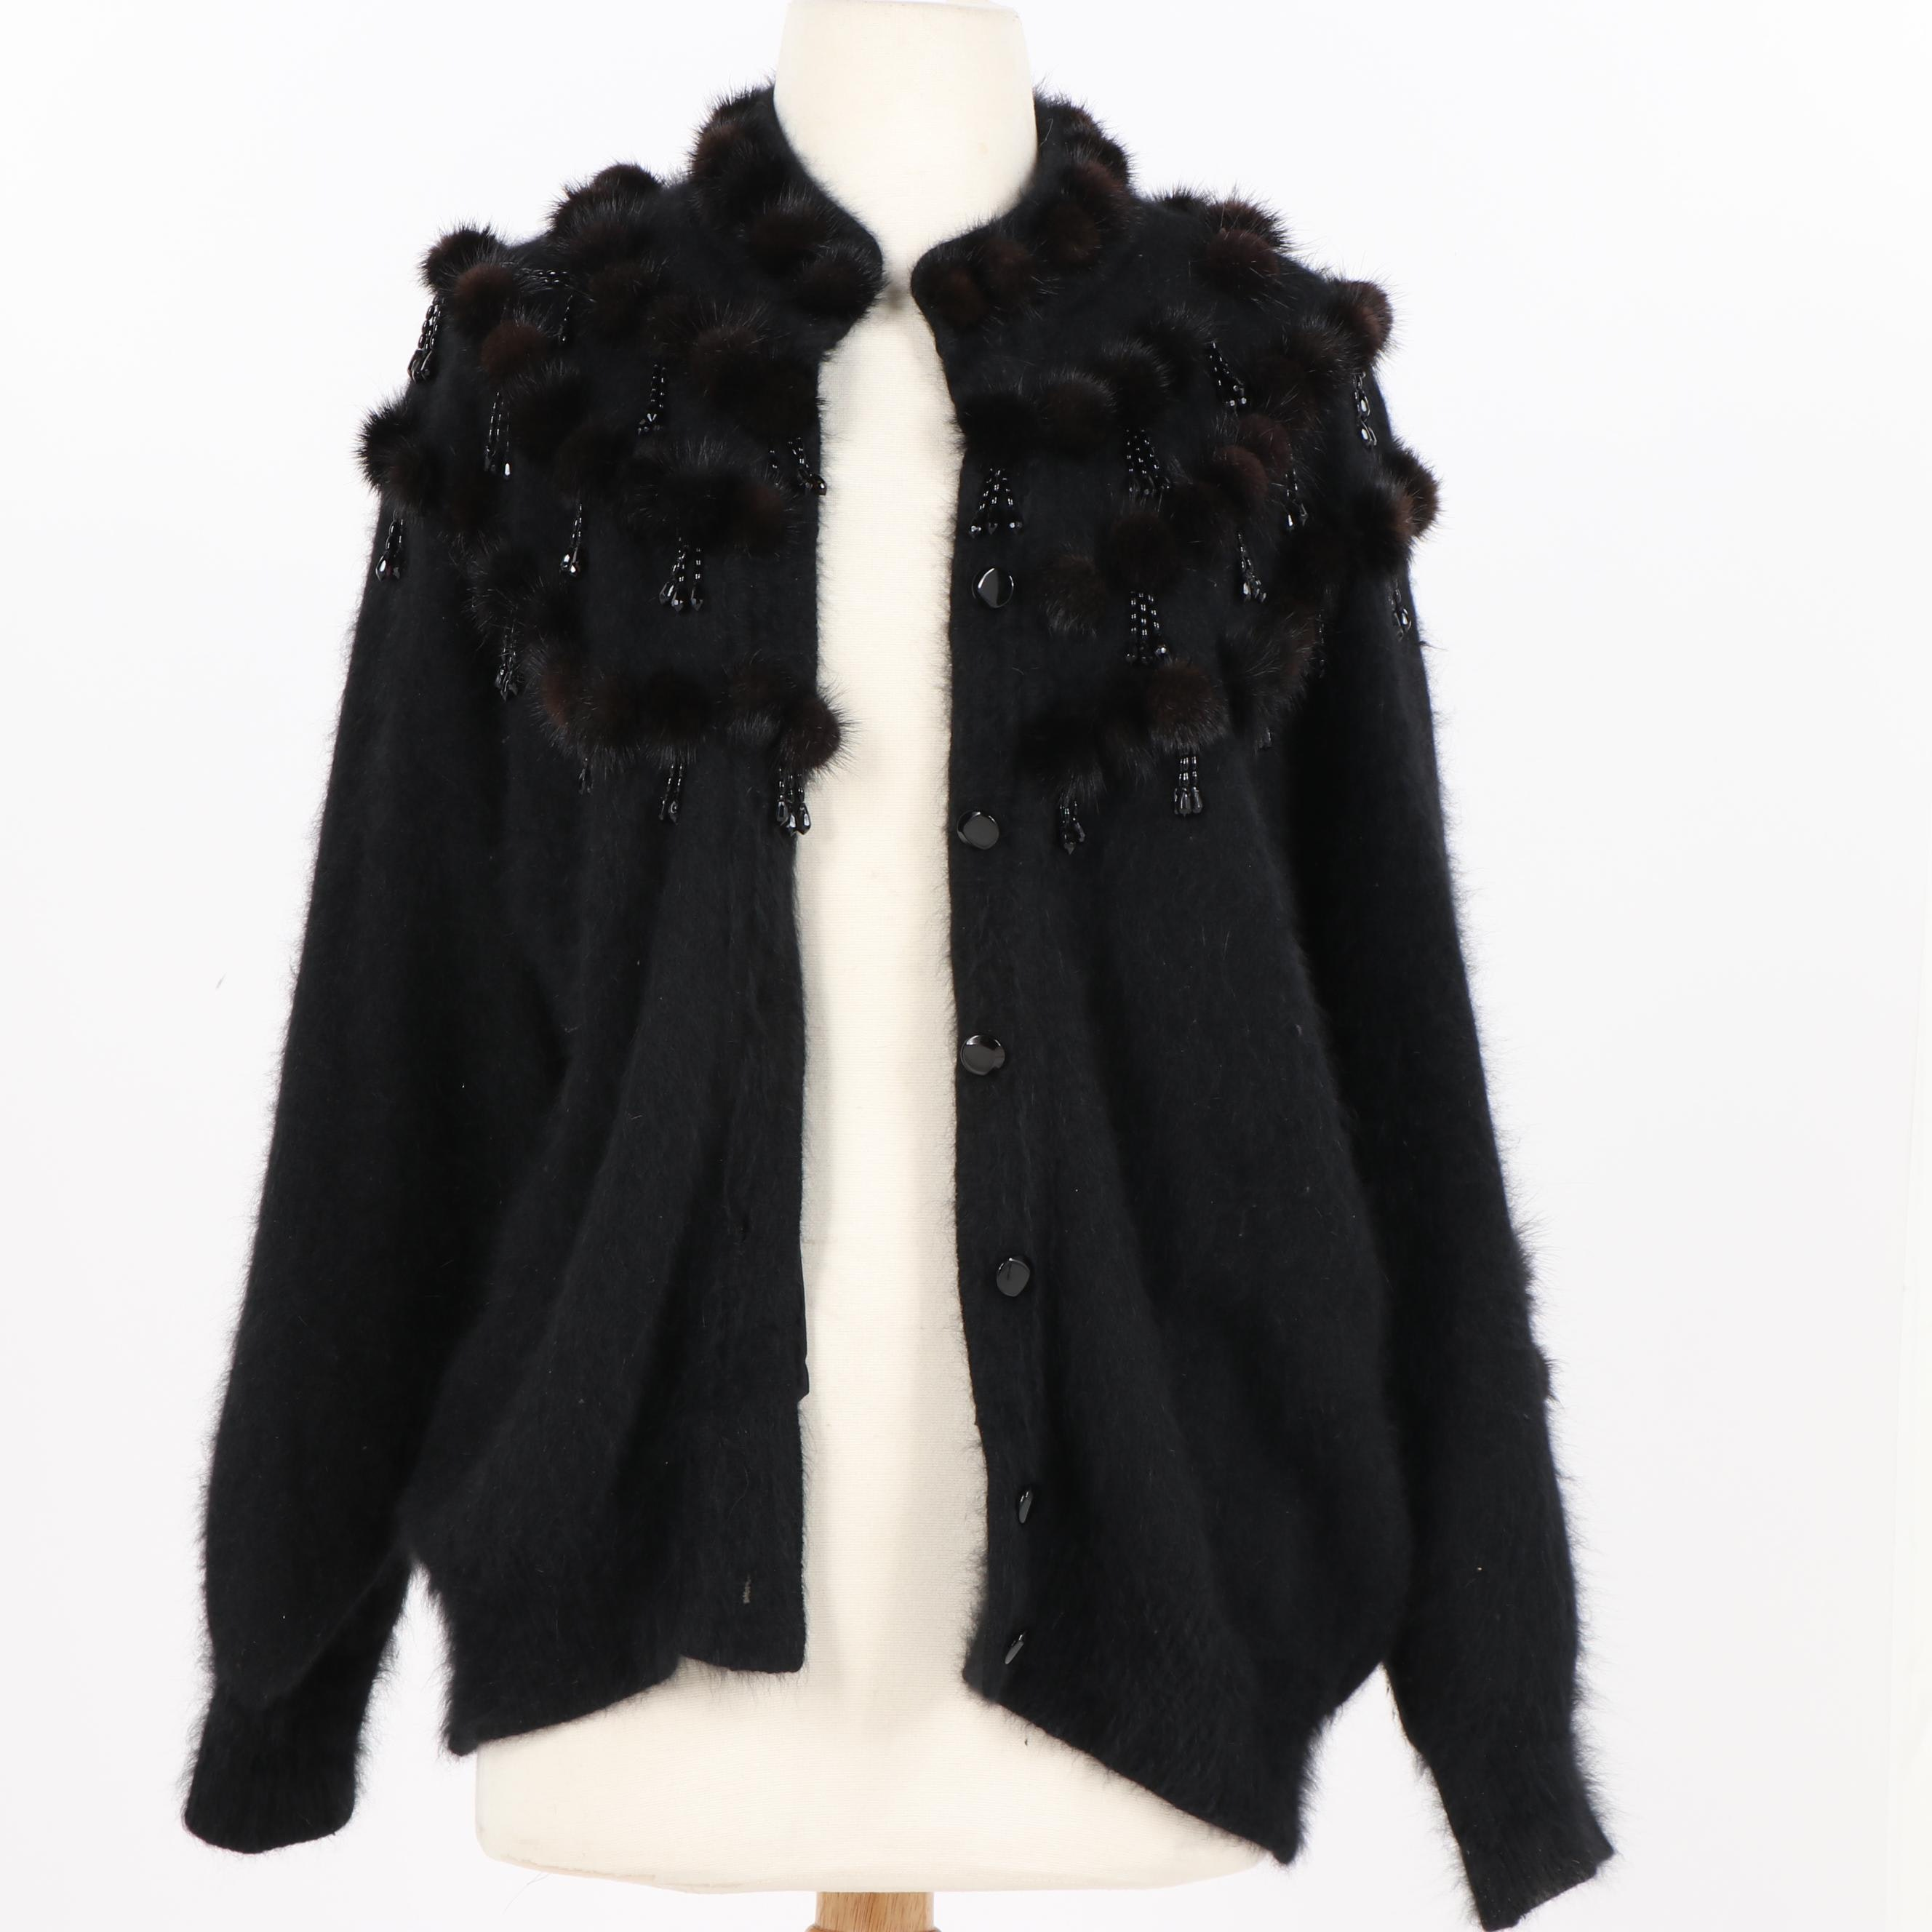 Women's Black Mohair Cardigan Sweater with Mink Fur Trim and Beads